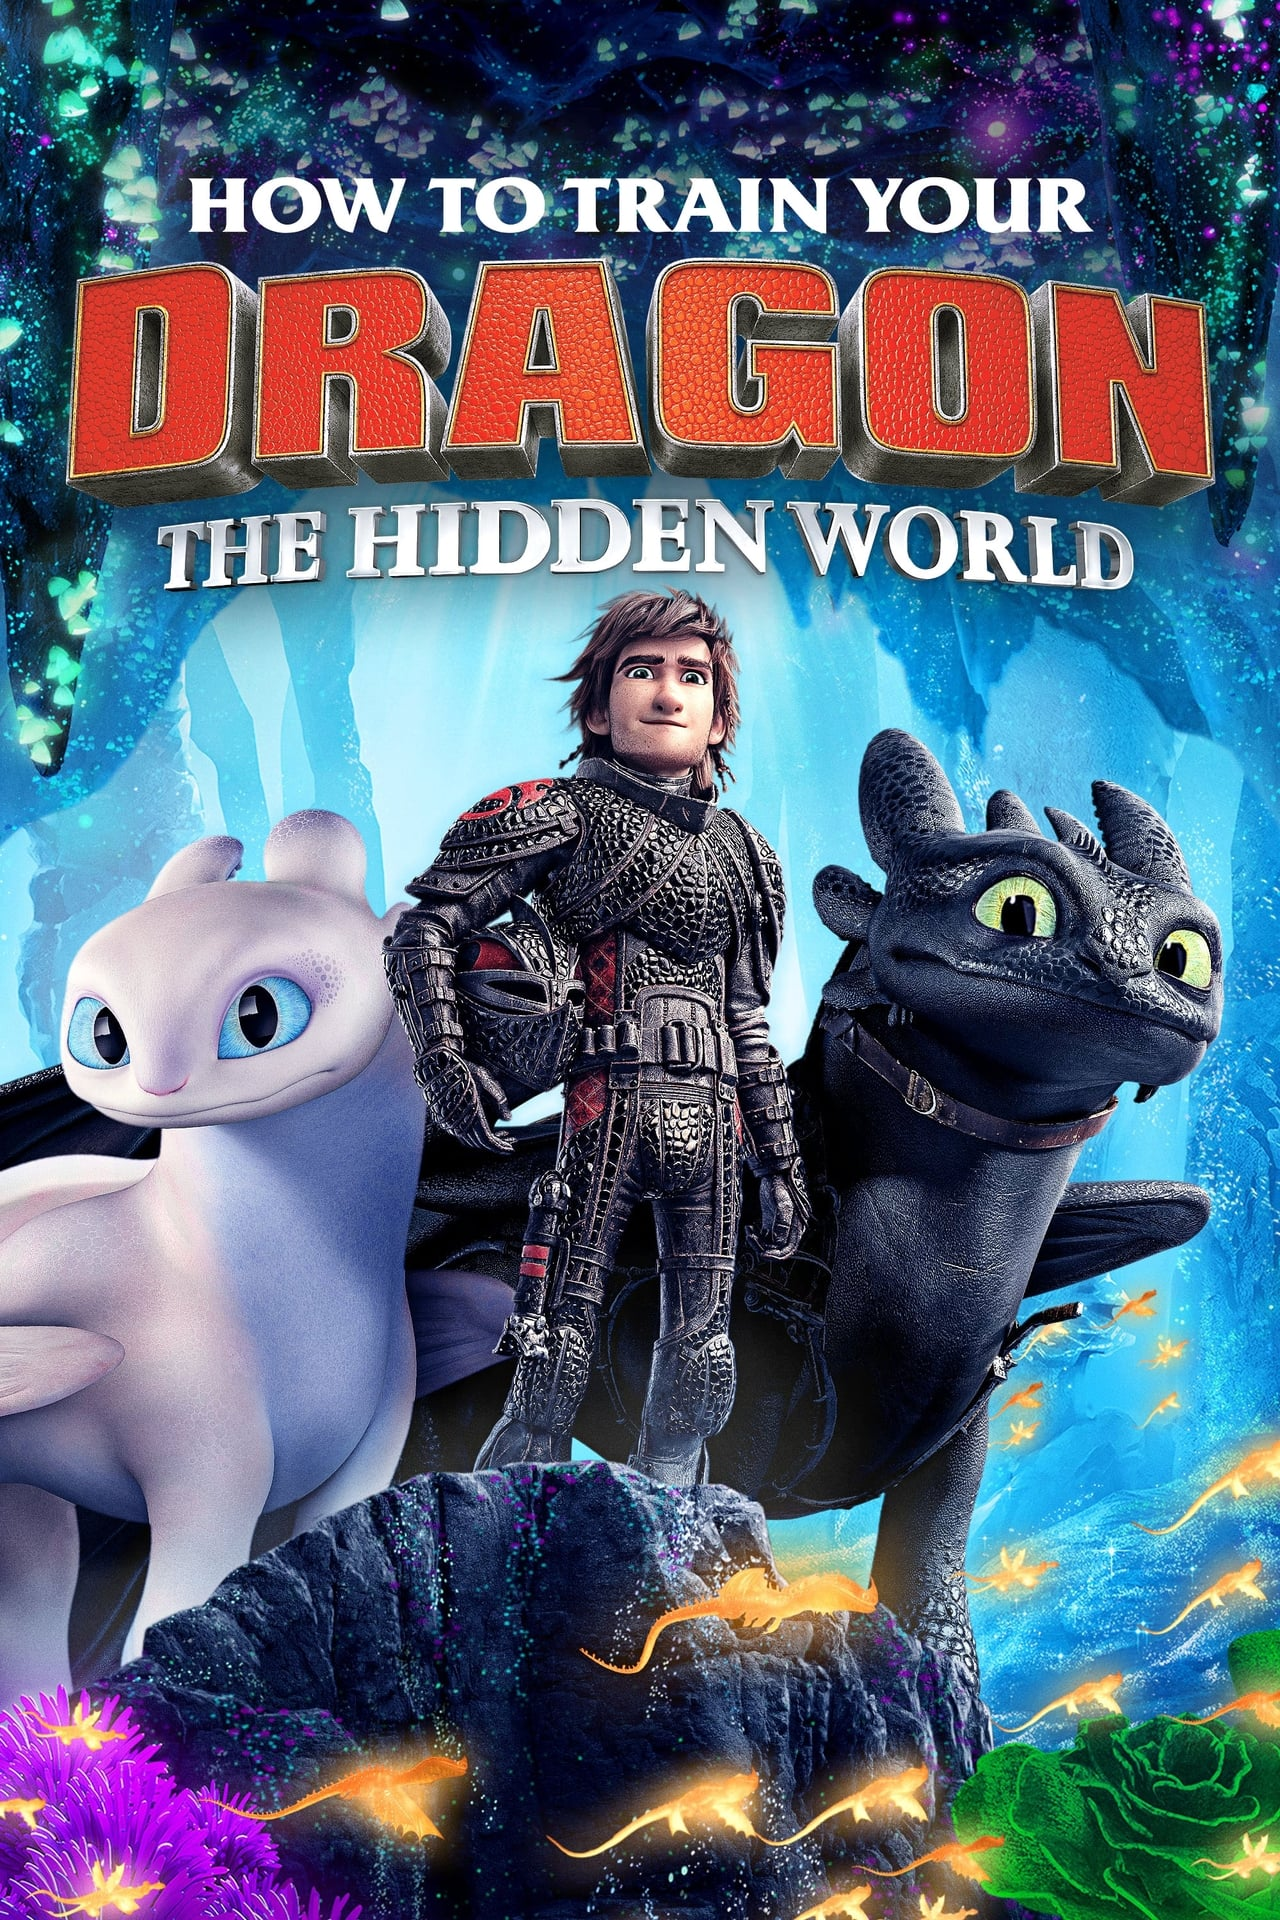 How to train your dragon 2019 english subtitle download